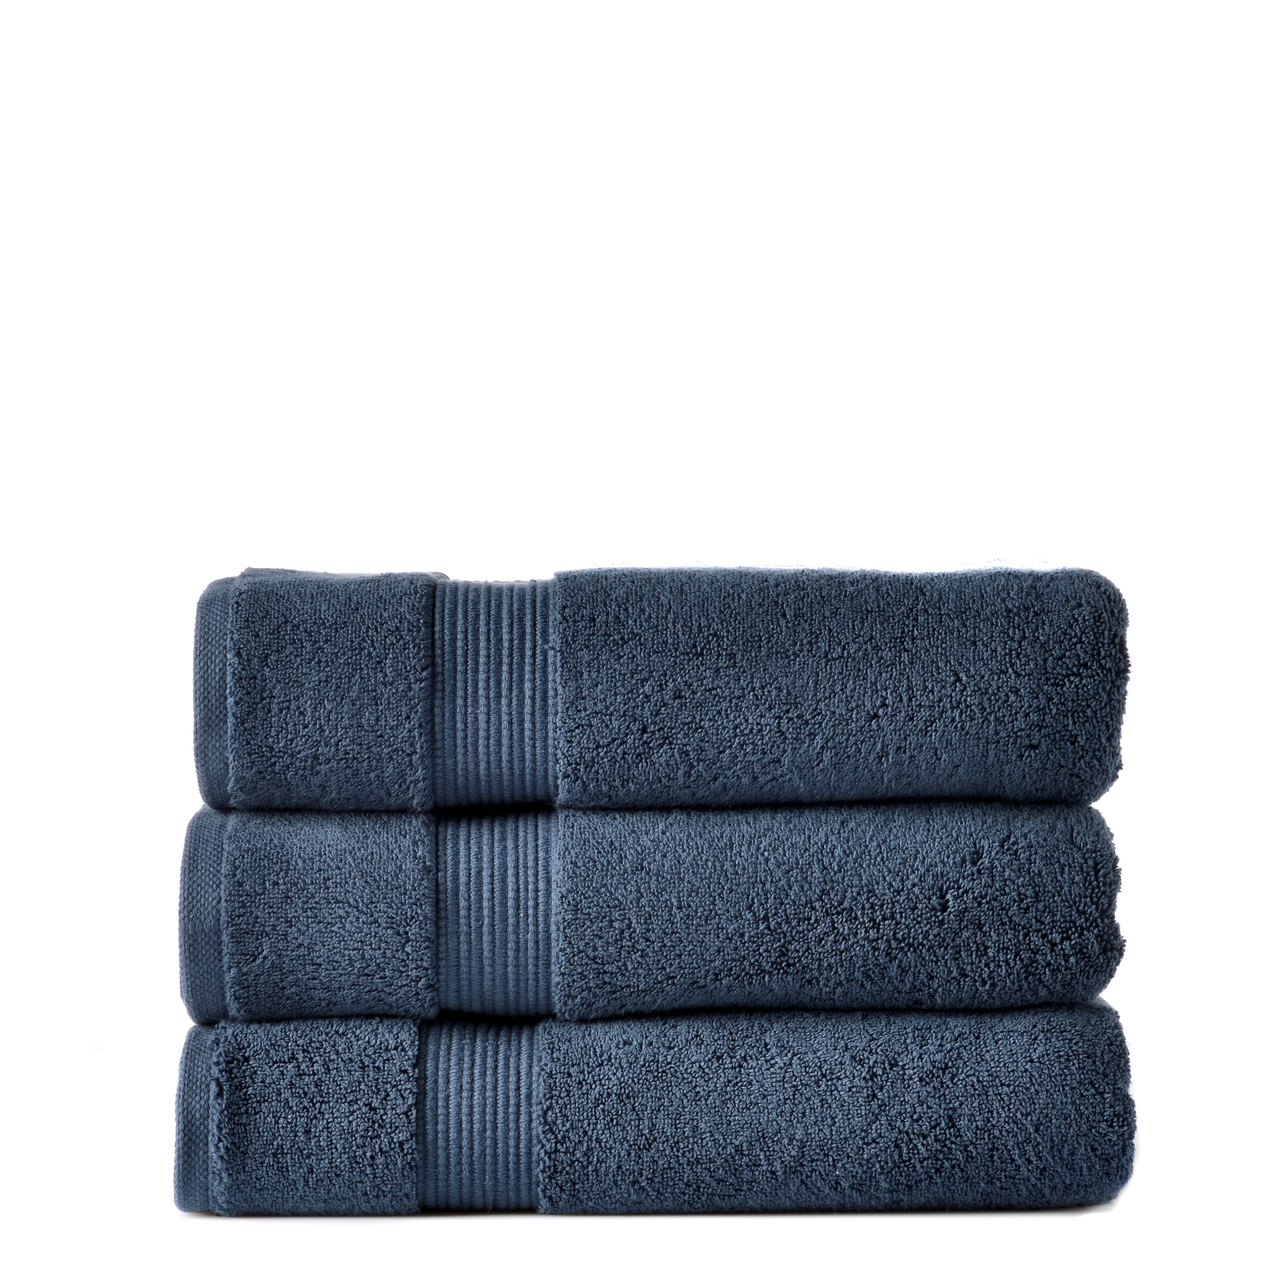 Our Zero Twist 650 gsm 100% cotton bath towels are soft and plush. They are colourfast and durable. The drying becomes more enhanced with every wash maintaing a soft and plush texture.  Colour Grey There are 10 beautiful colours to choose from all with matching accessories.